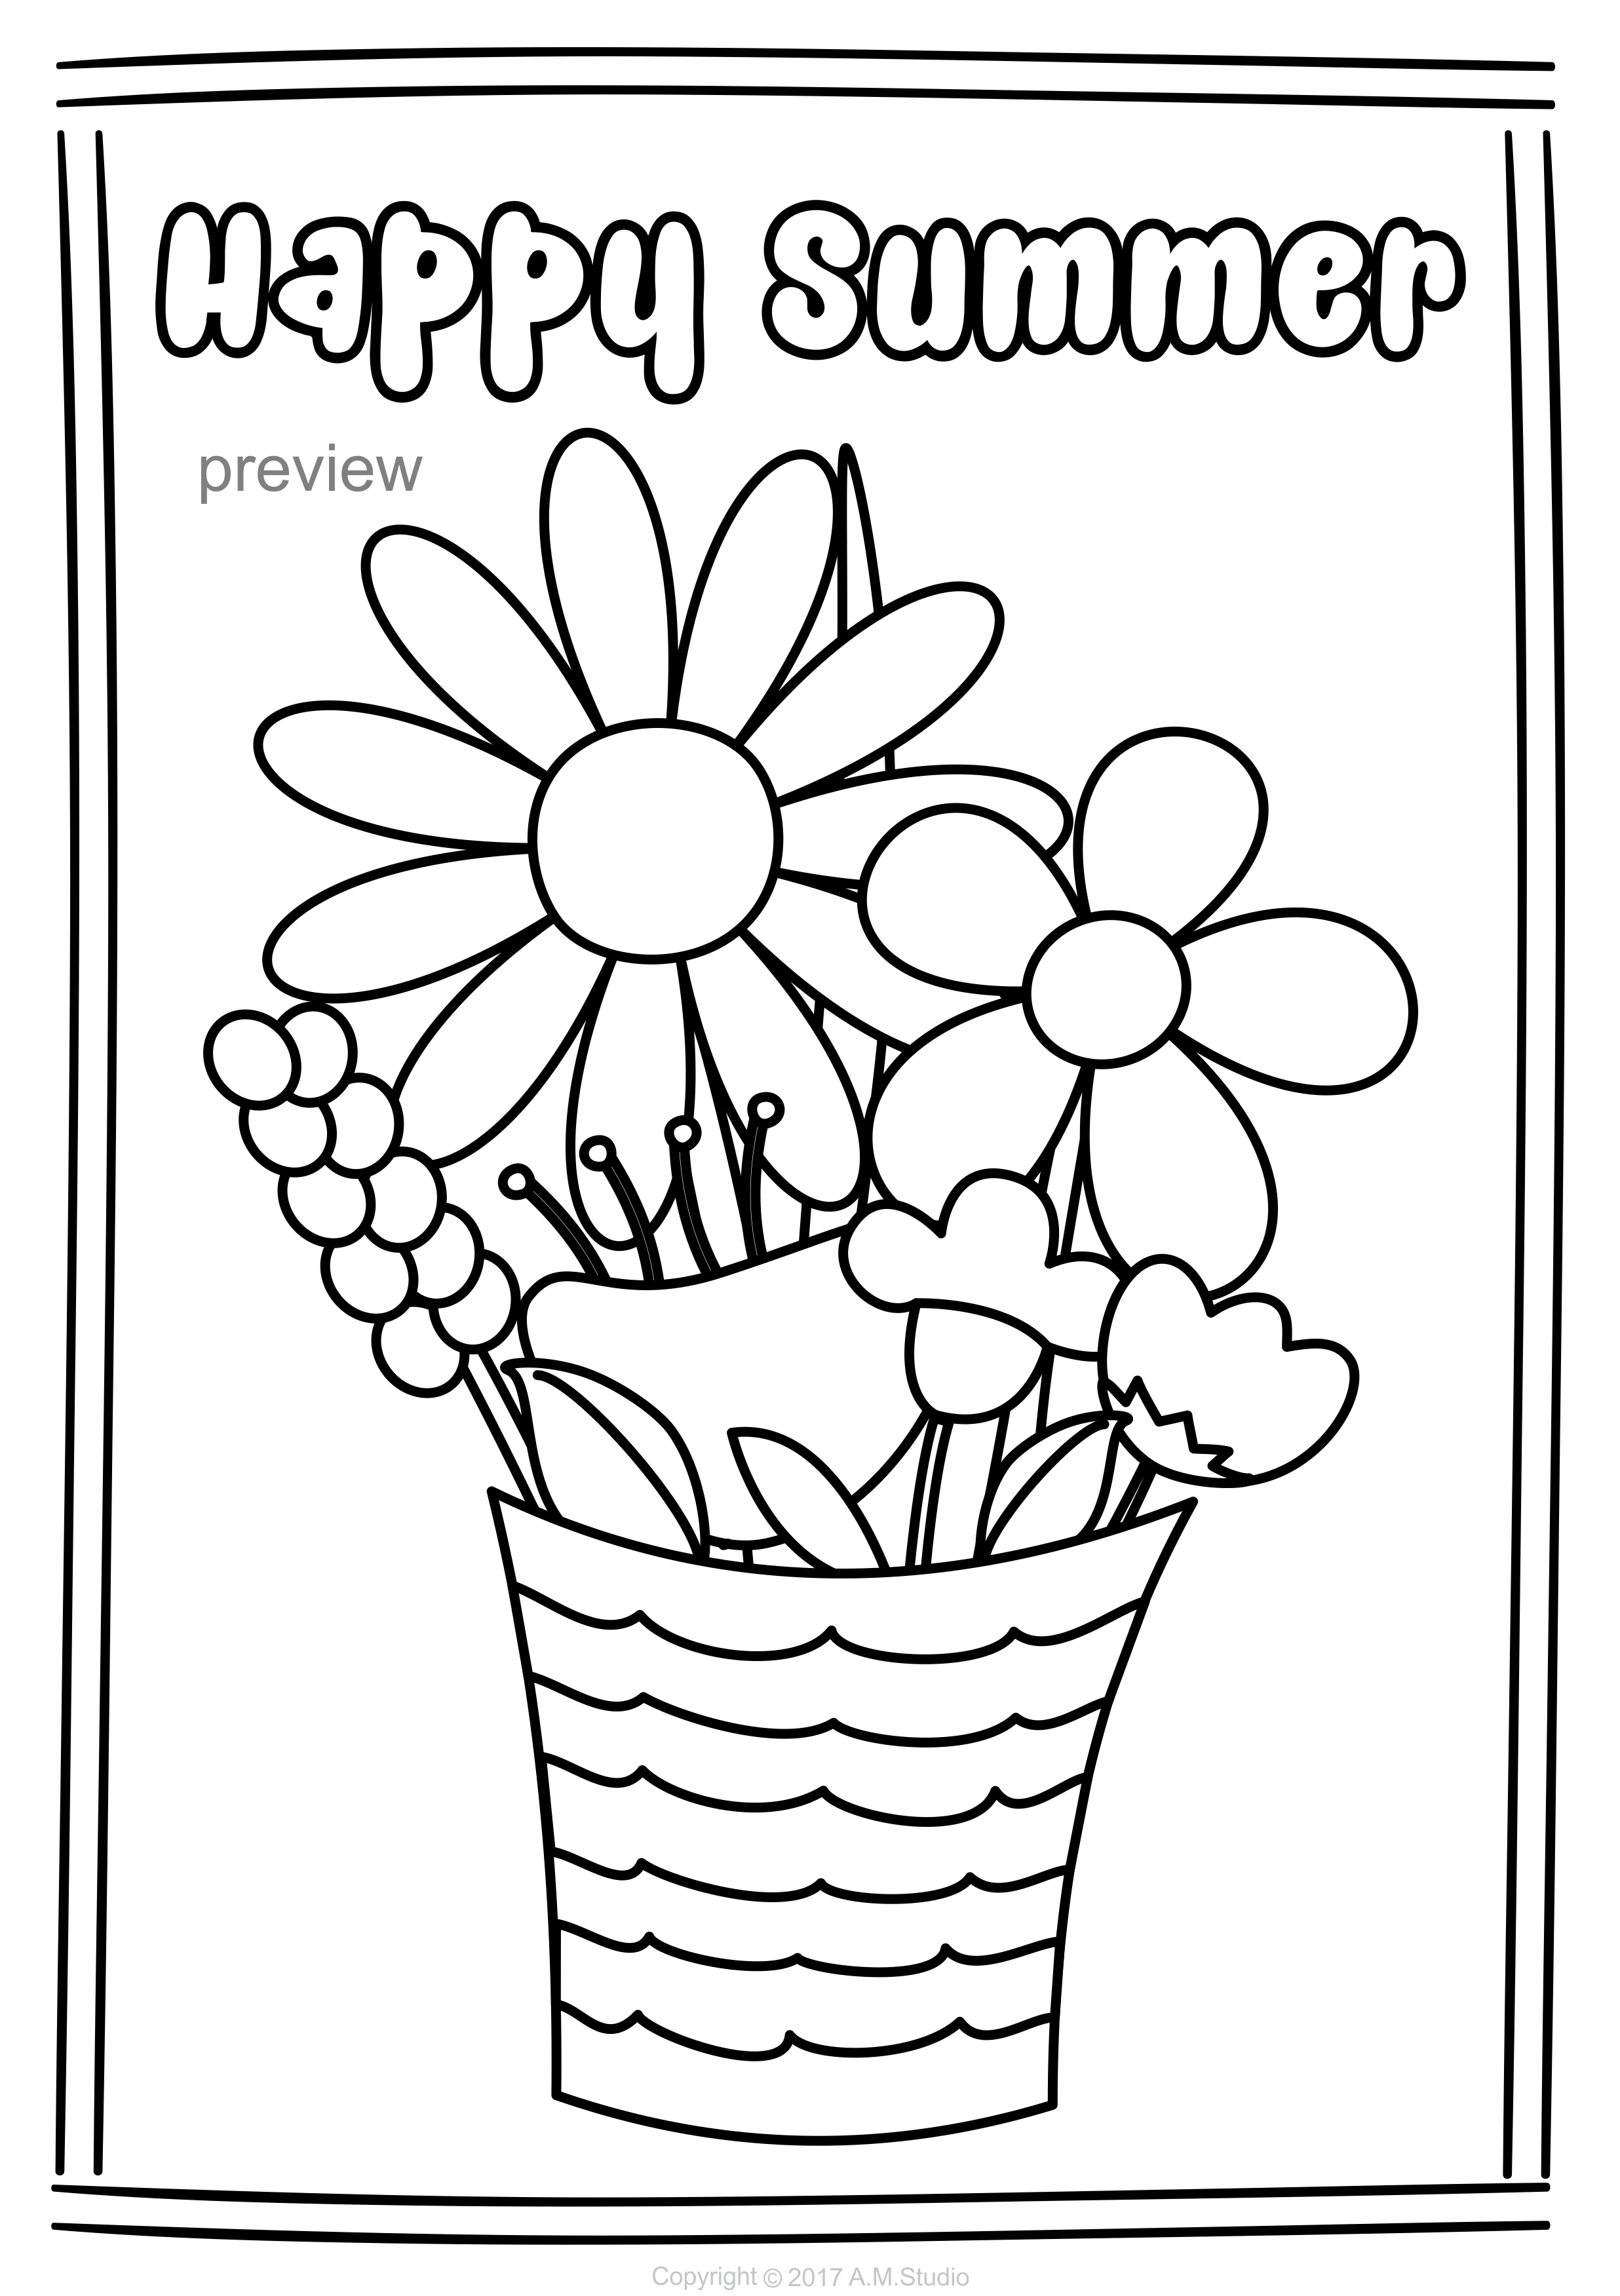 - Summer Coloring Pages Summer Coloring Pages, Coloring Pages